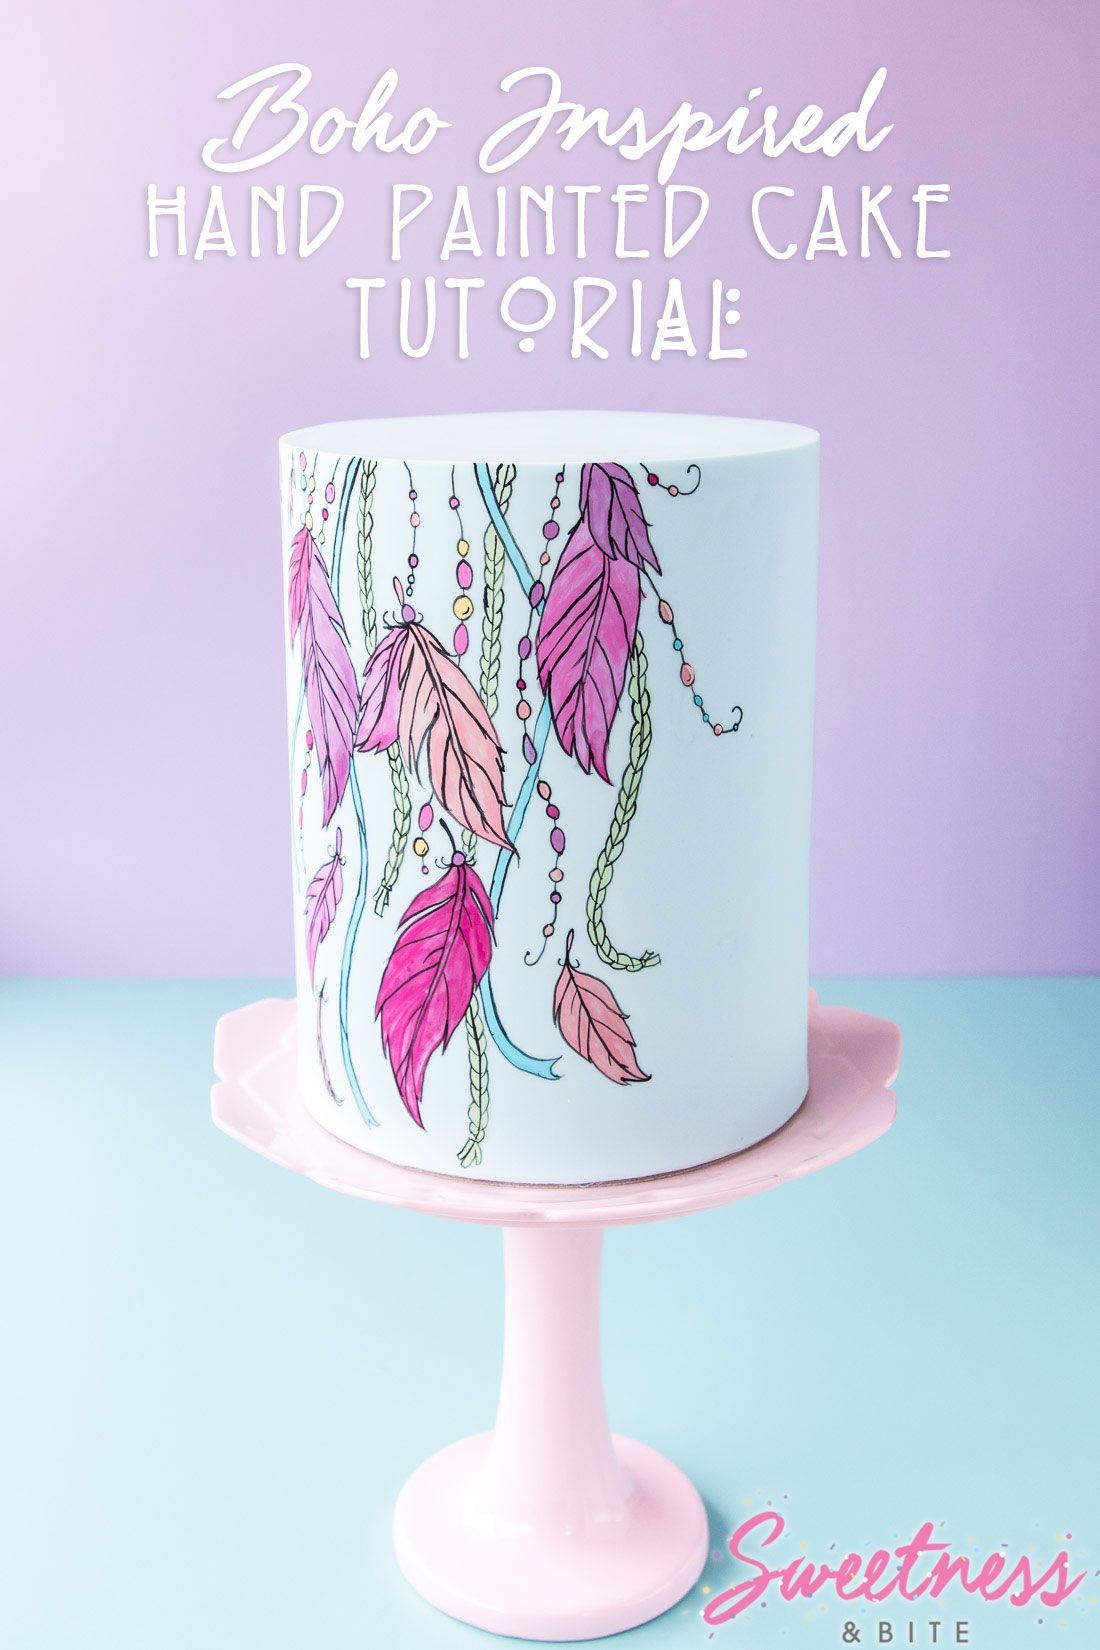 Hand,Painted Cake Tutorial. Step,by,step instructions on how